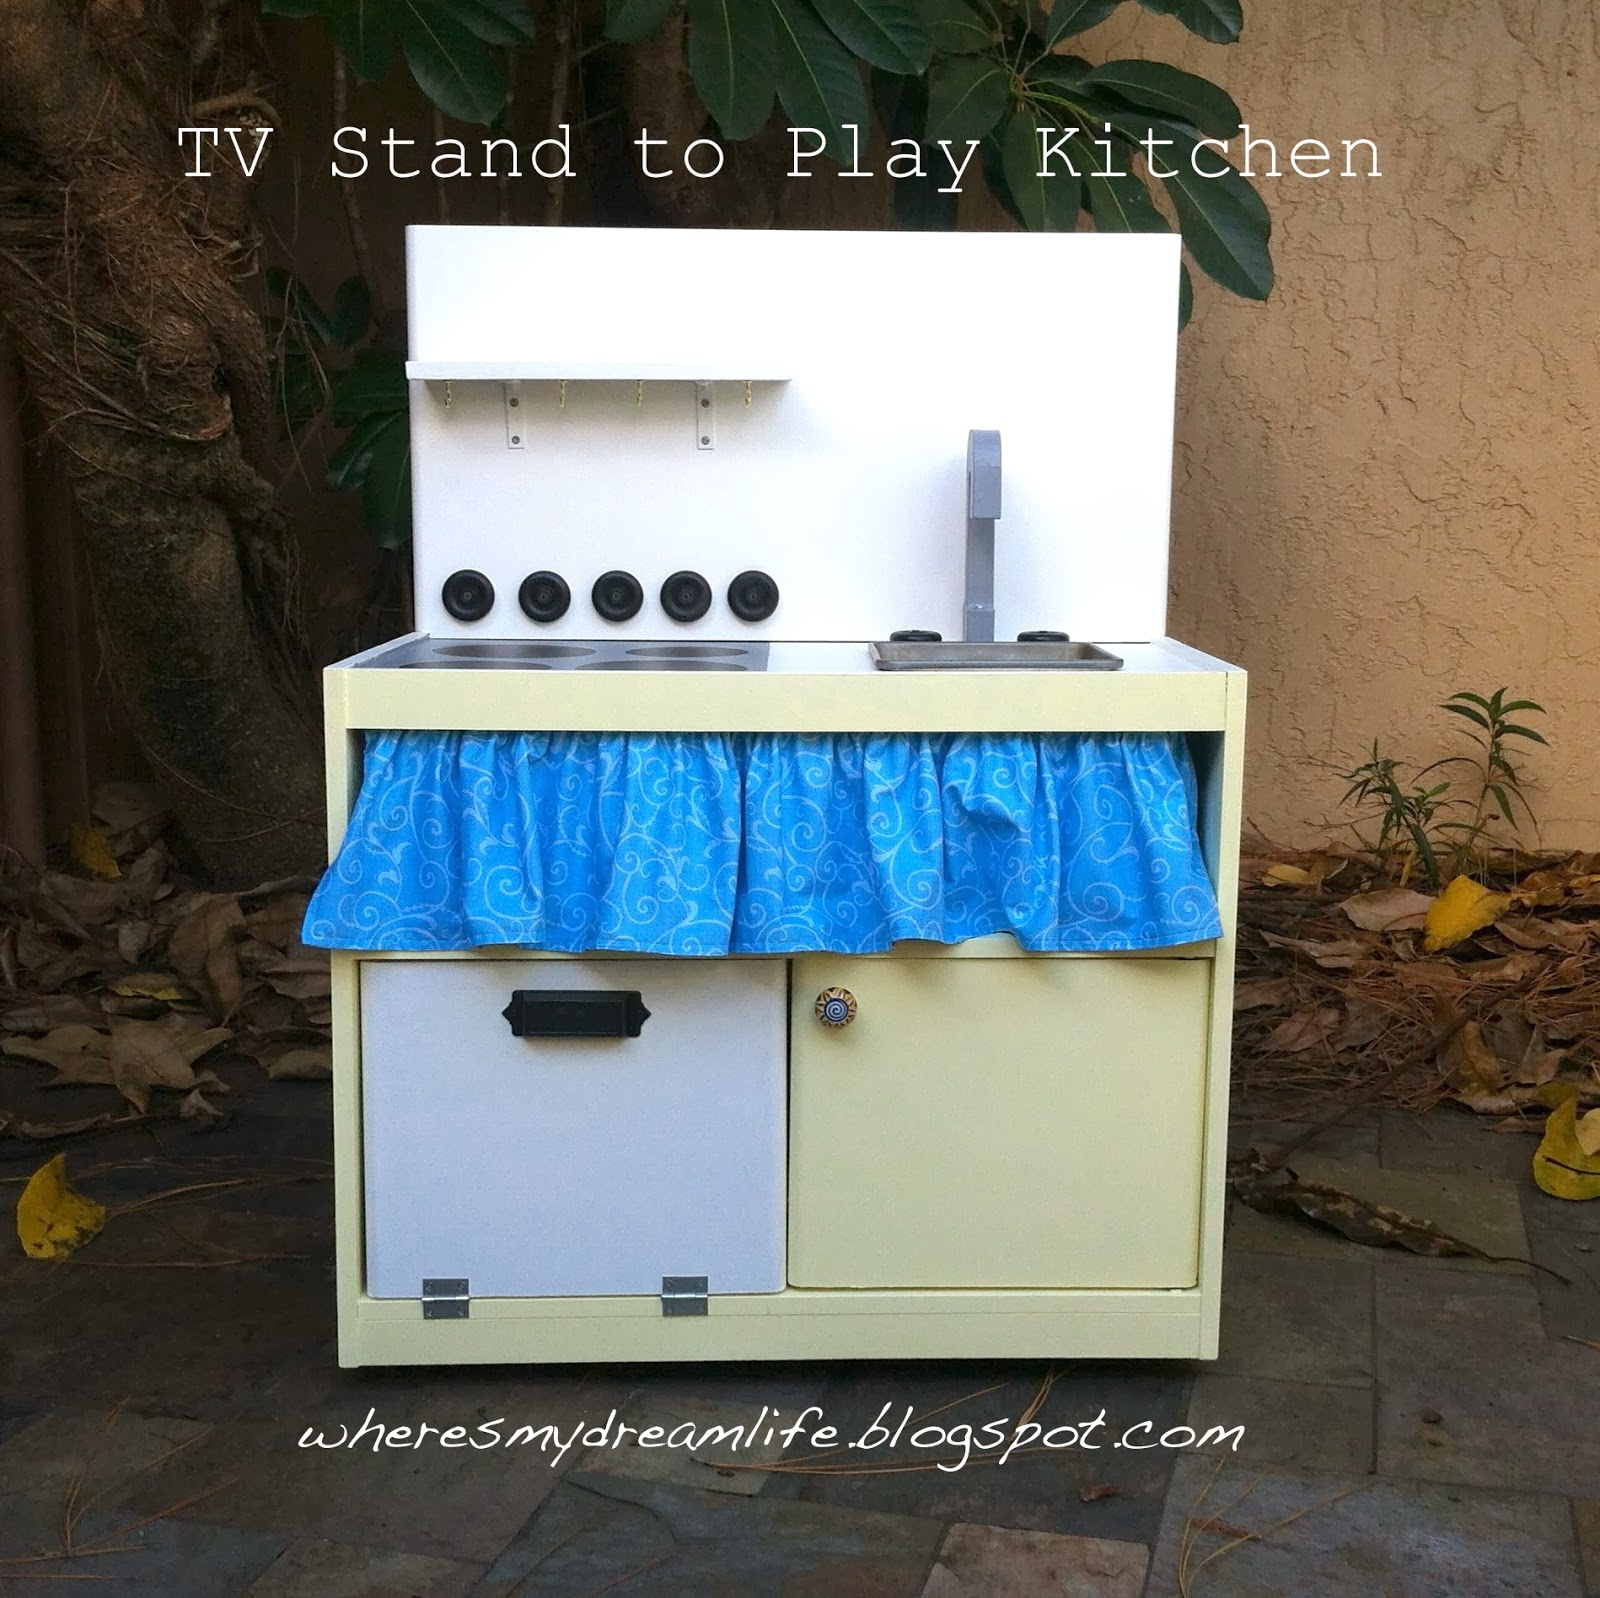 Where s My Dream Life Upcycled TV Stand to Play Kitchen